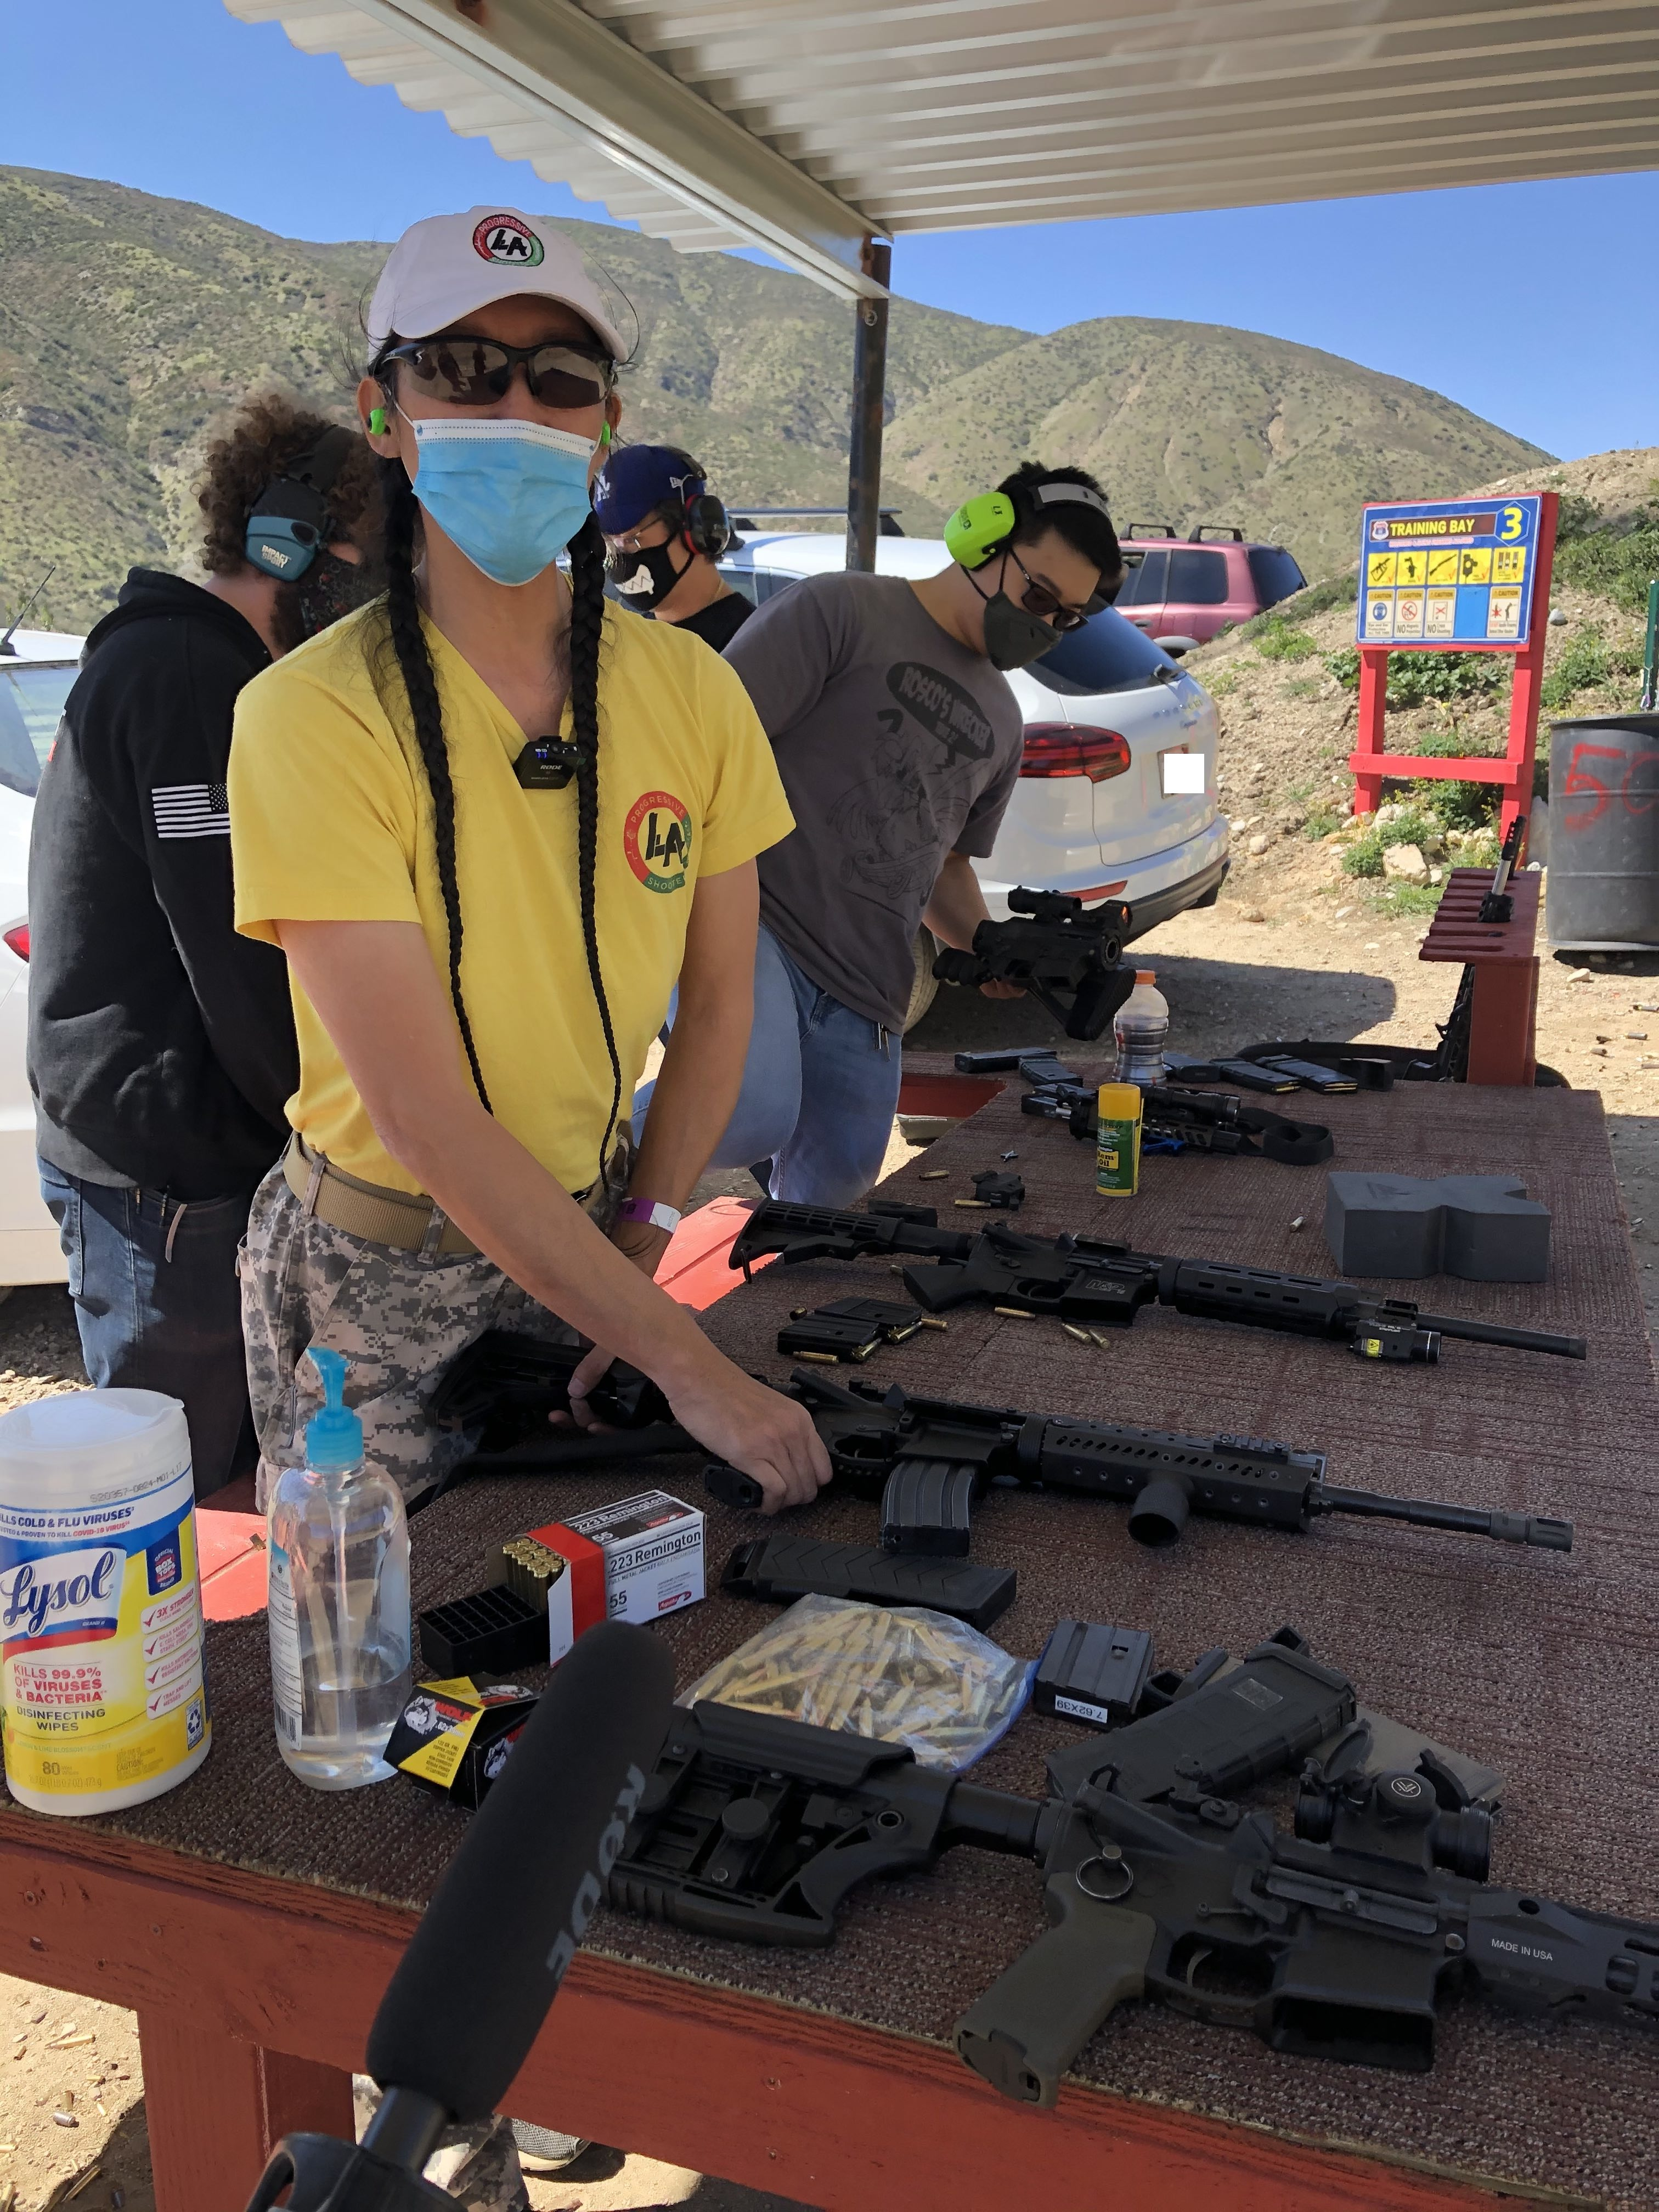 Caption: Tom Nguyen, founder of L.A. Progressive Shooters, at the Route 66 Shooting Park in San Bernardino, CA. March 27, 2021., Credit: M. Lopez, Making Contact